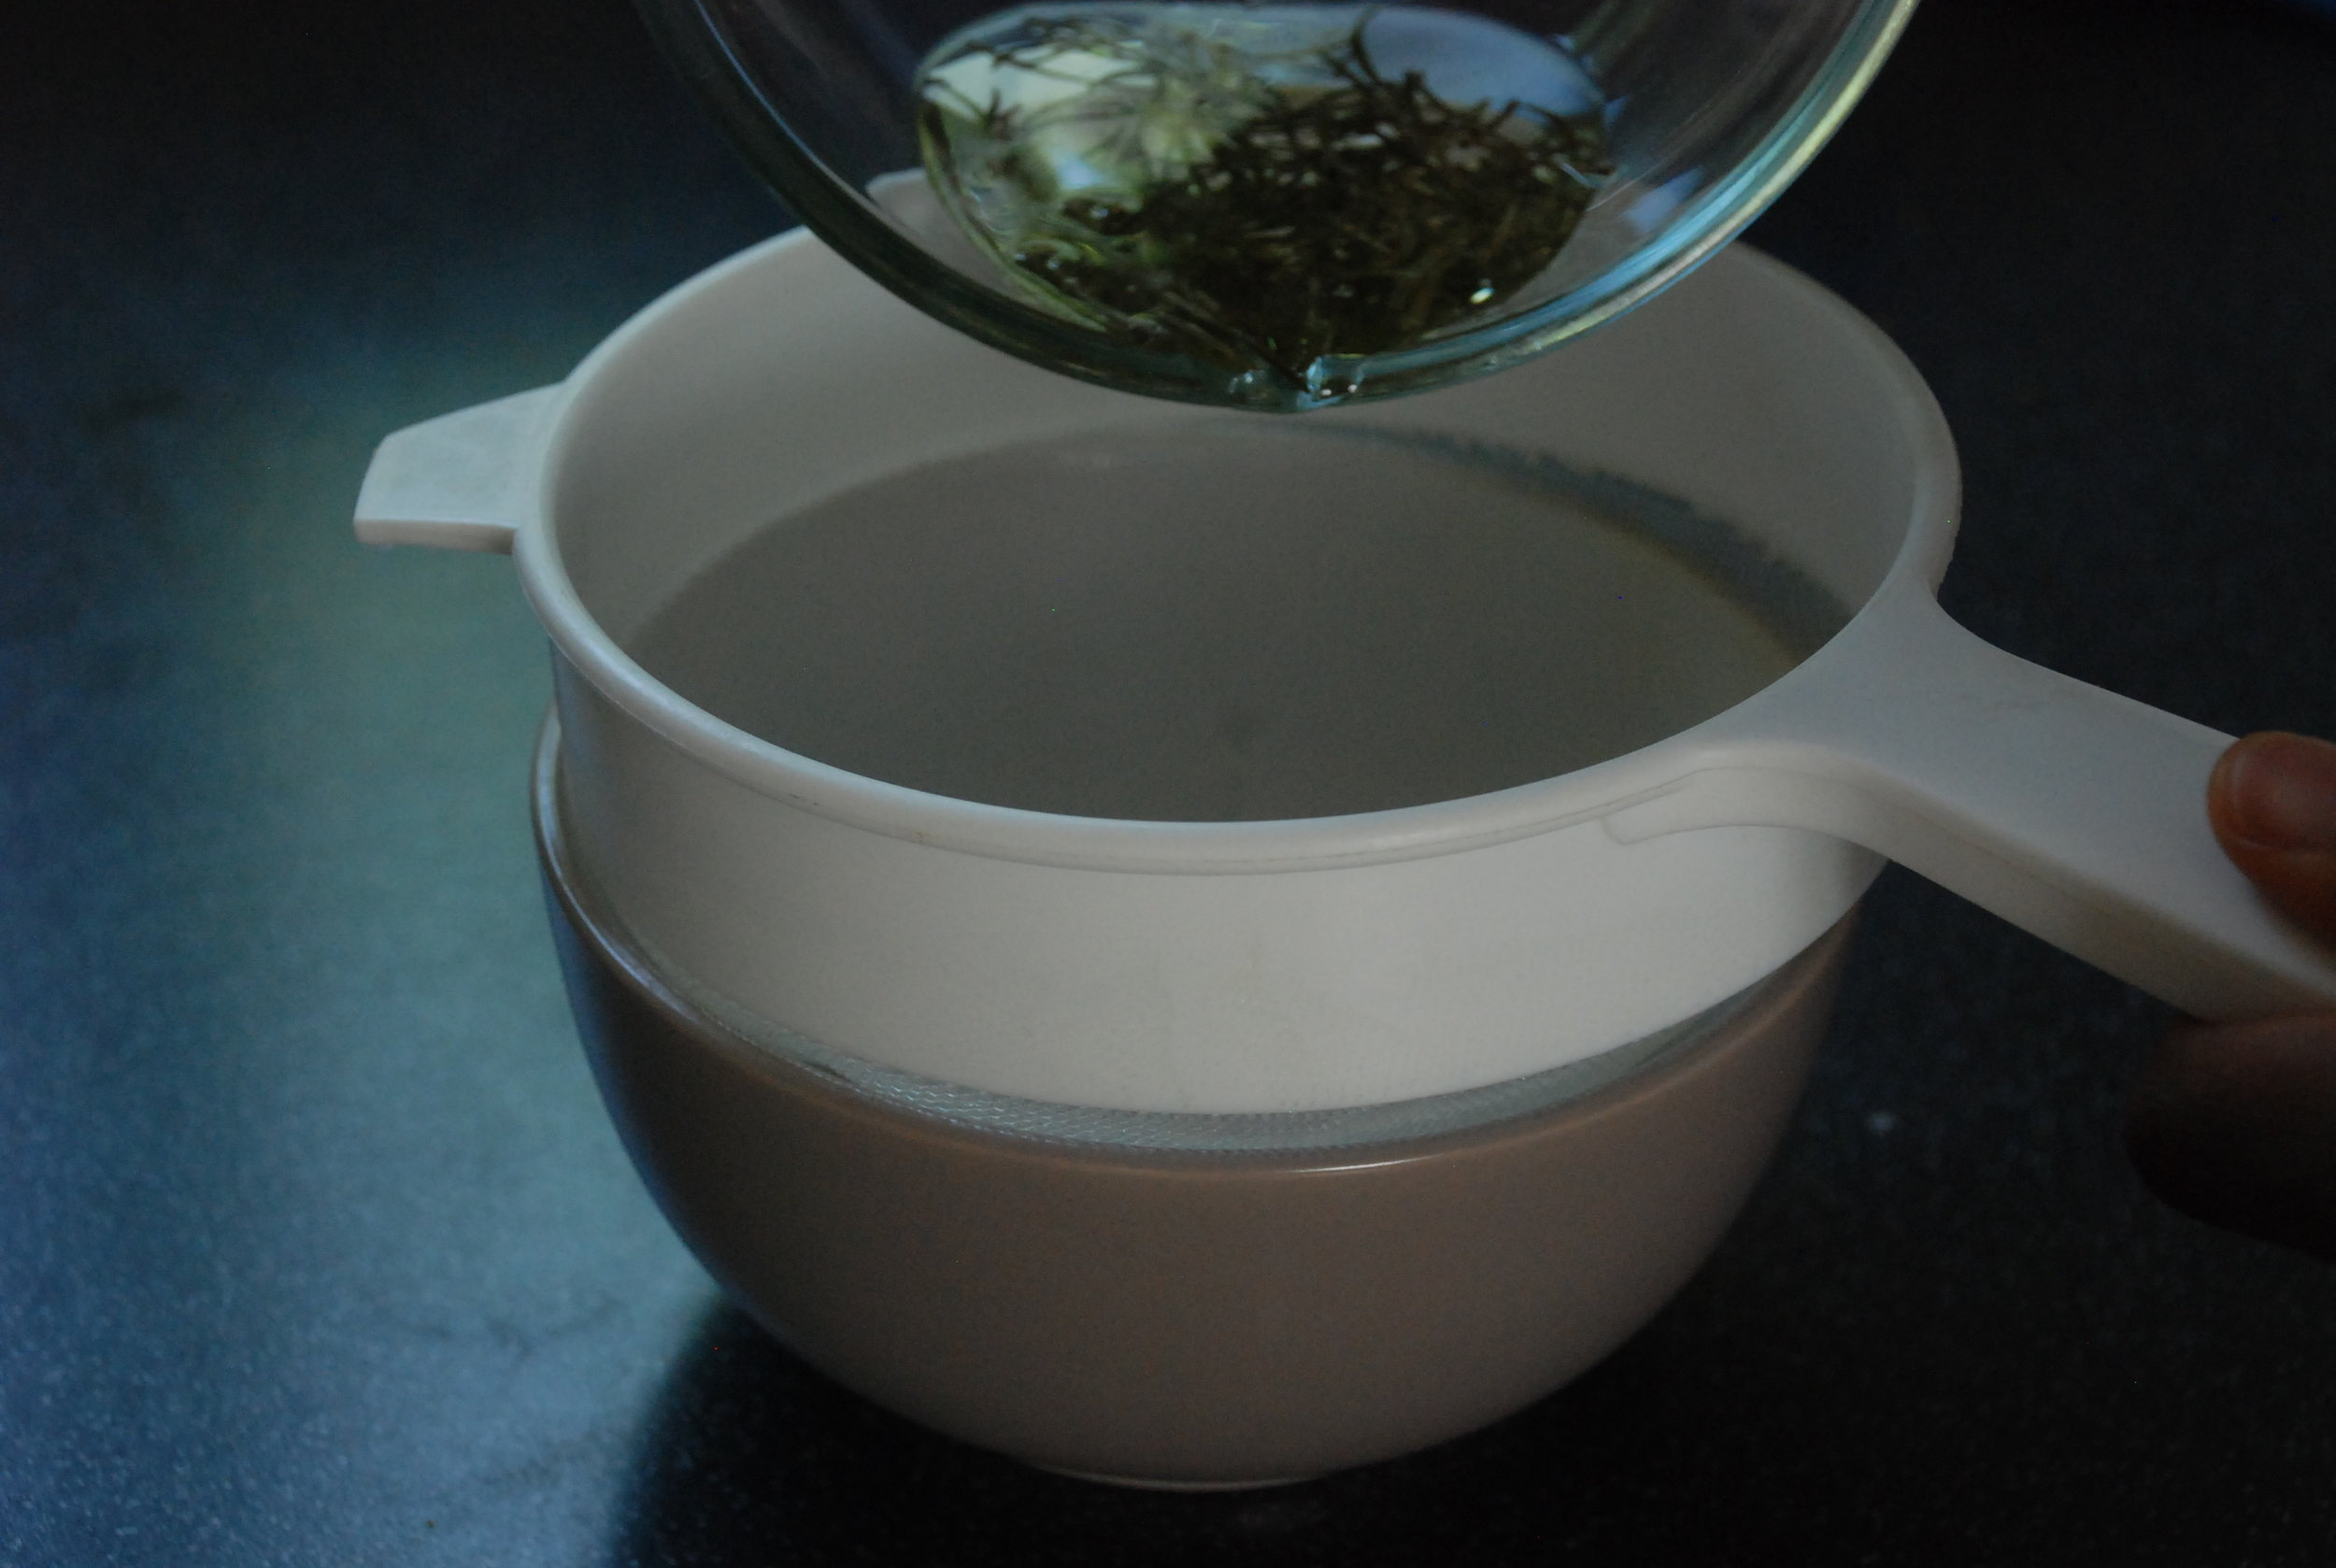 Strain the herbs using a mesh strainer or cheese cloth